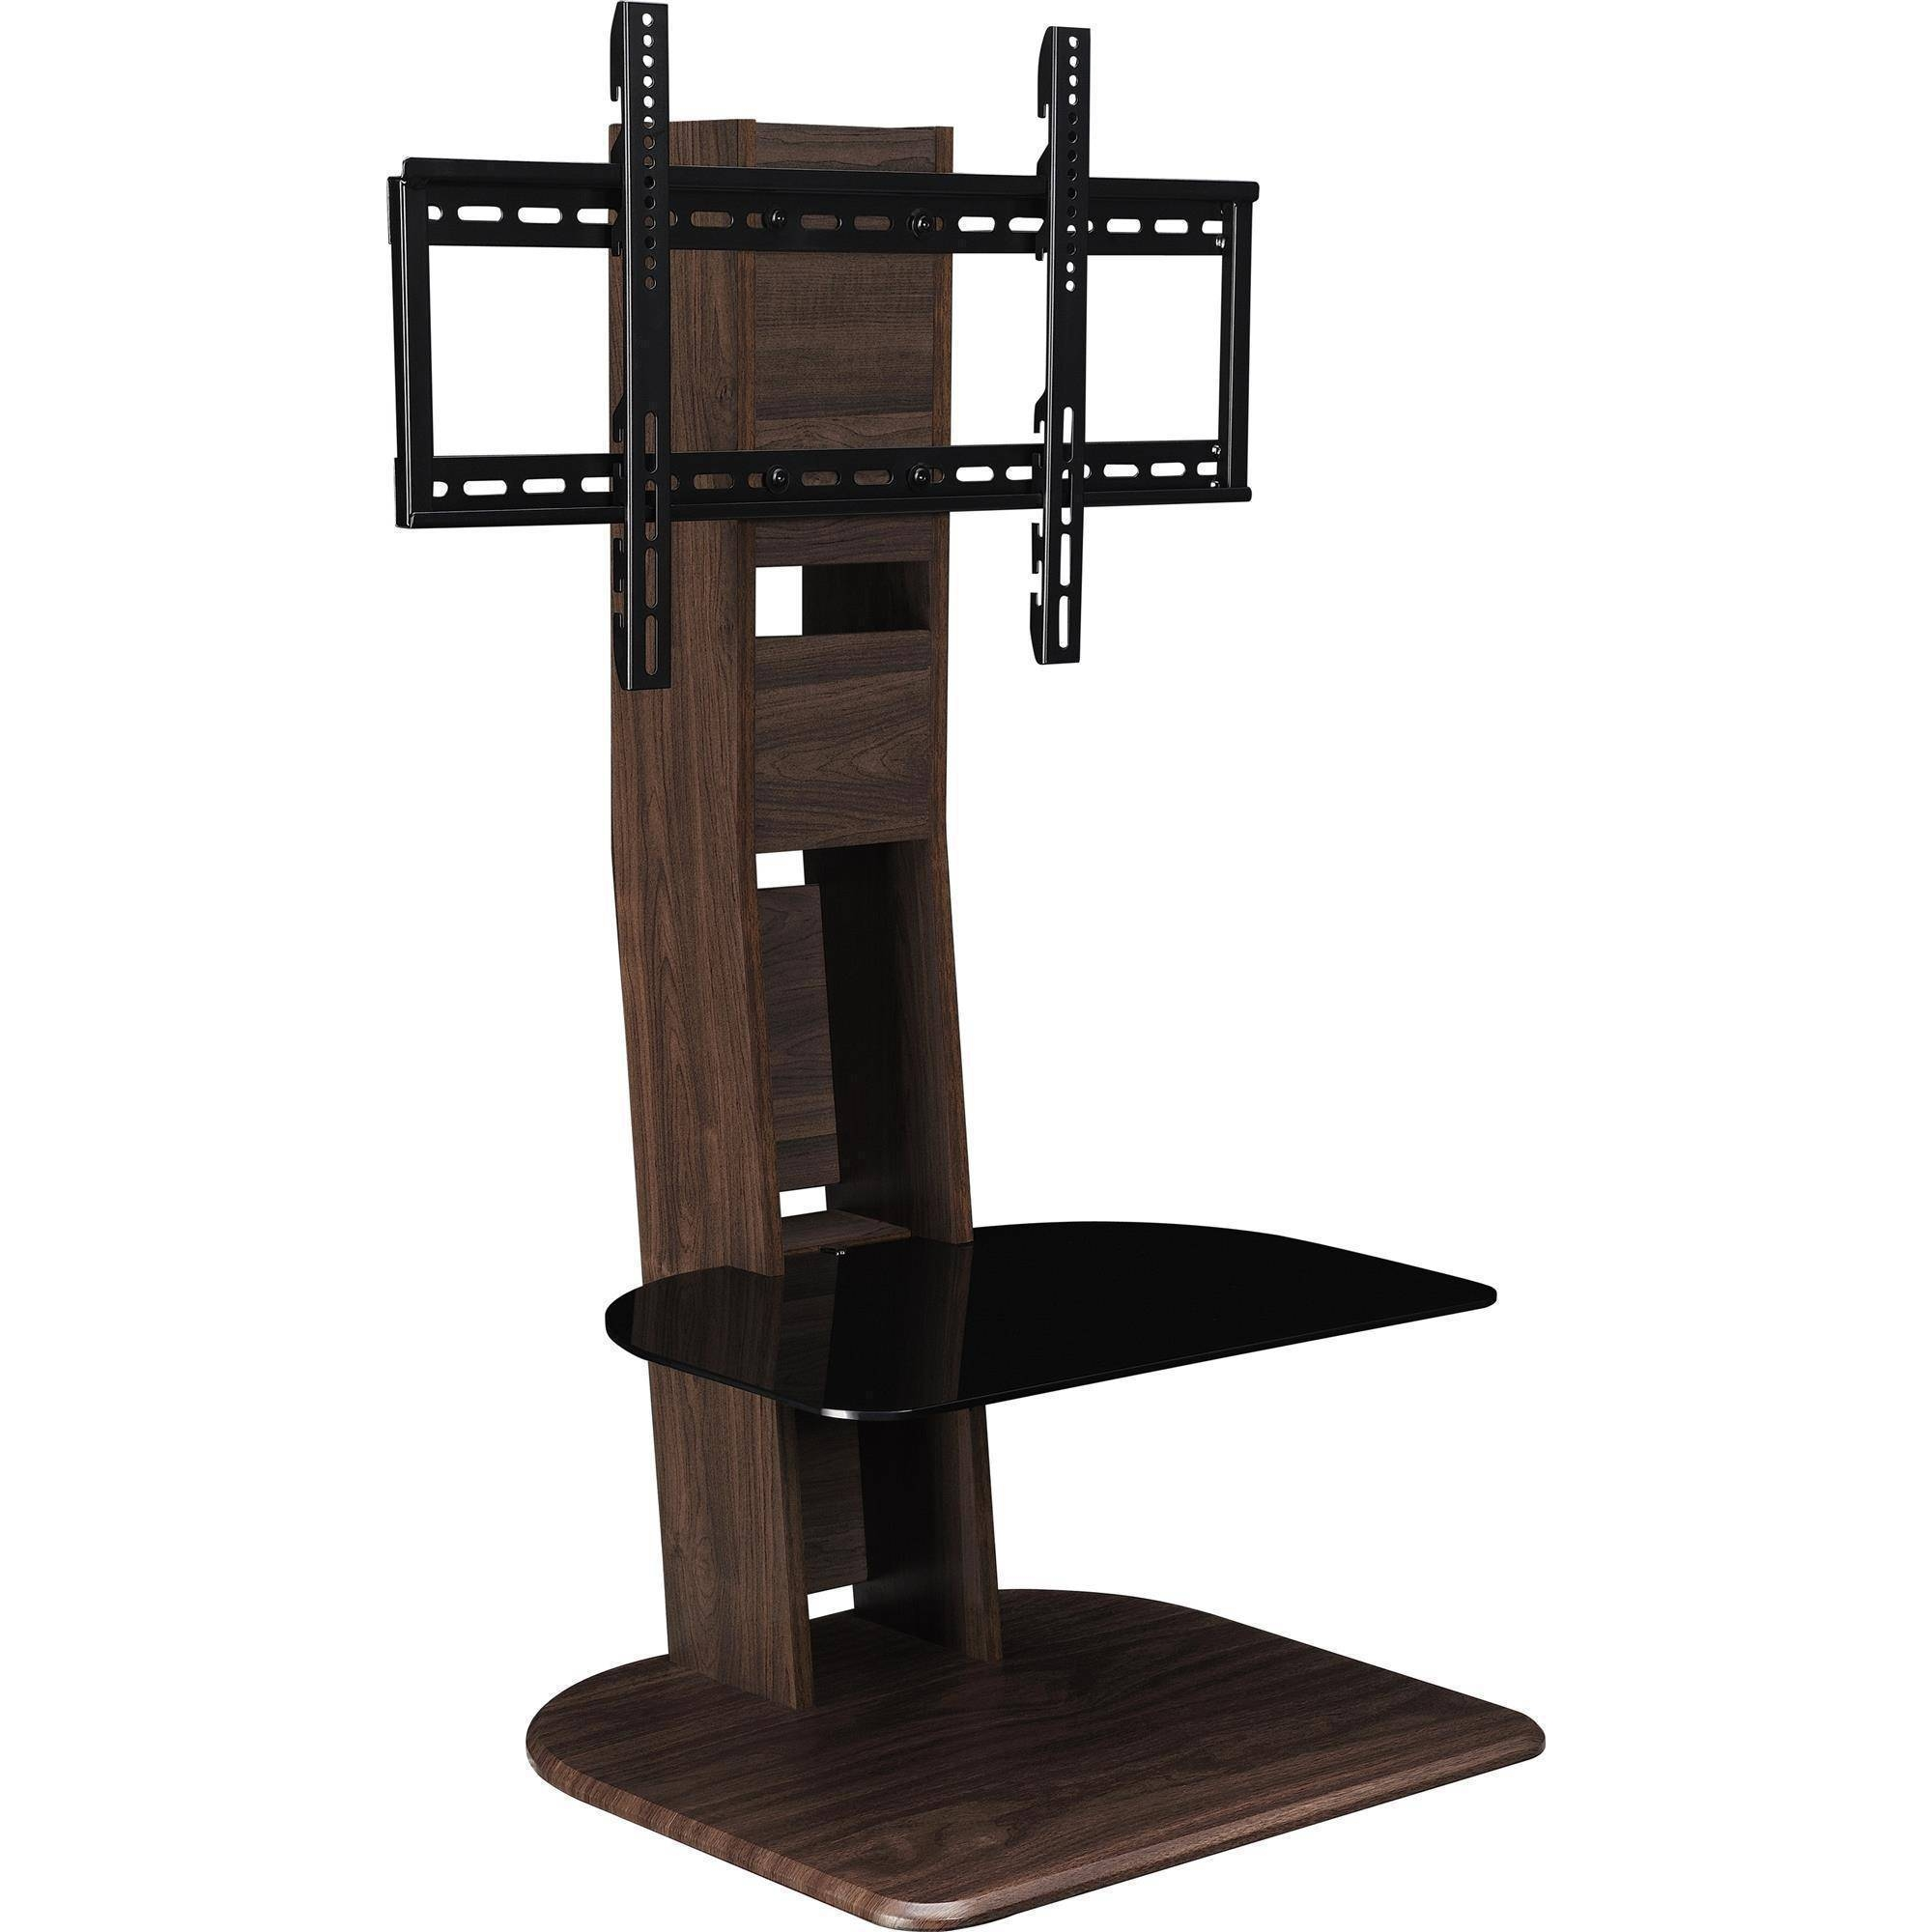 "Ameriwood Home Galaxy Tv Stand With Mount For Tvs Up To 50"", Black pertaining to 24 Inch Tall Tv Stands (Image 2 of 15)"